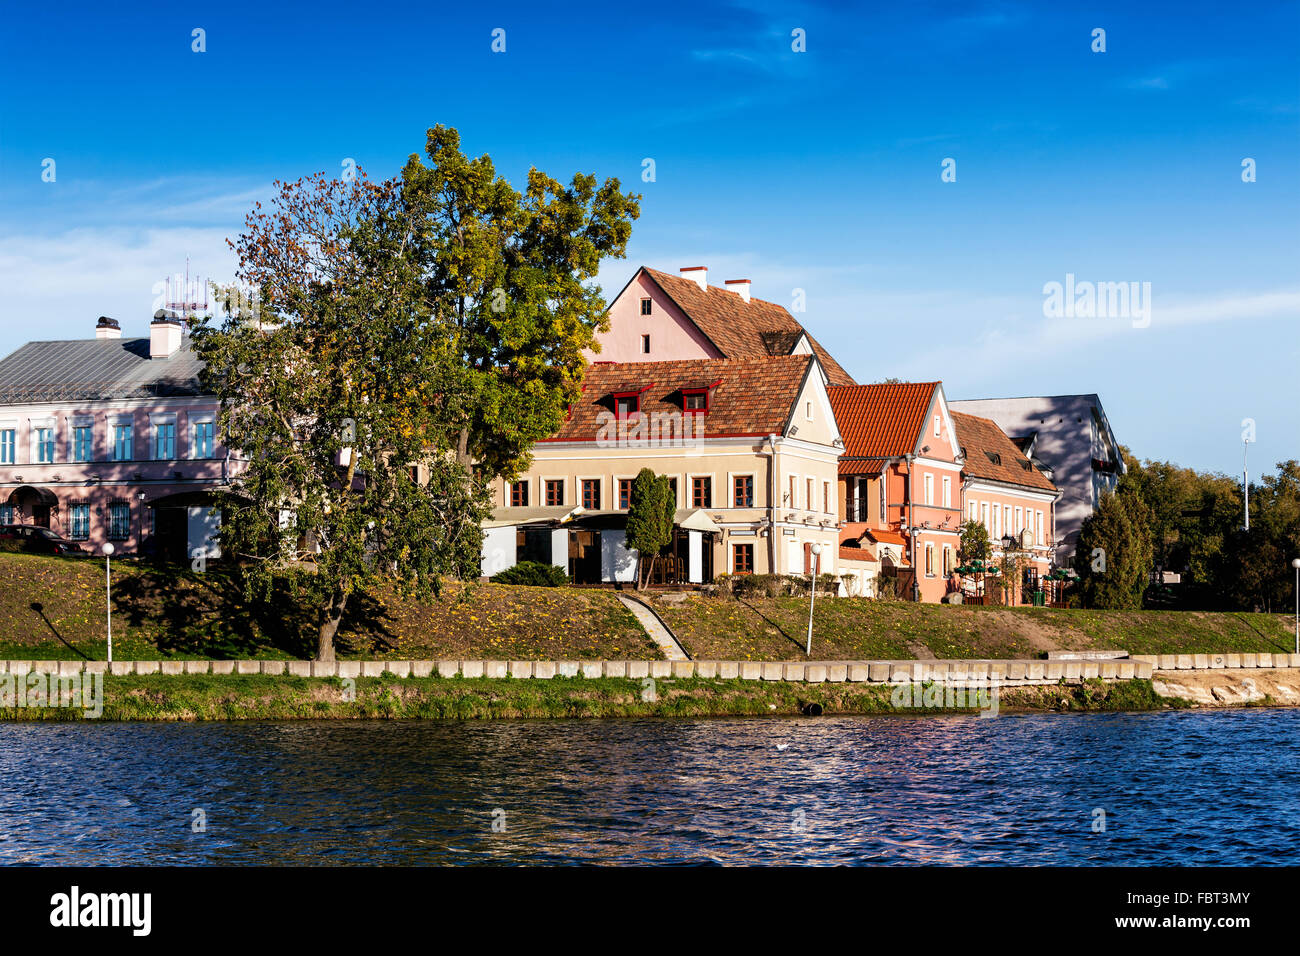 Trinity Suburb medieval part of Minsk - Stock Image